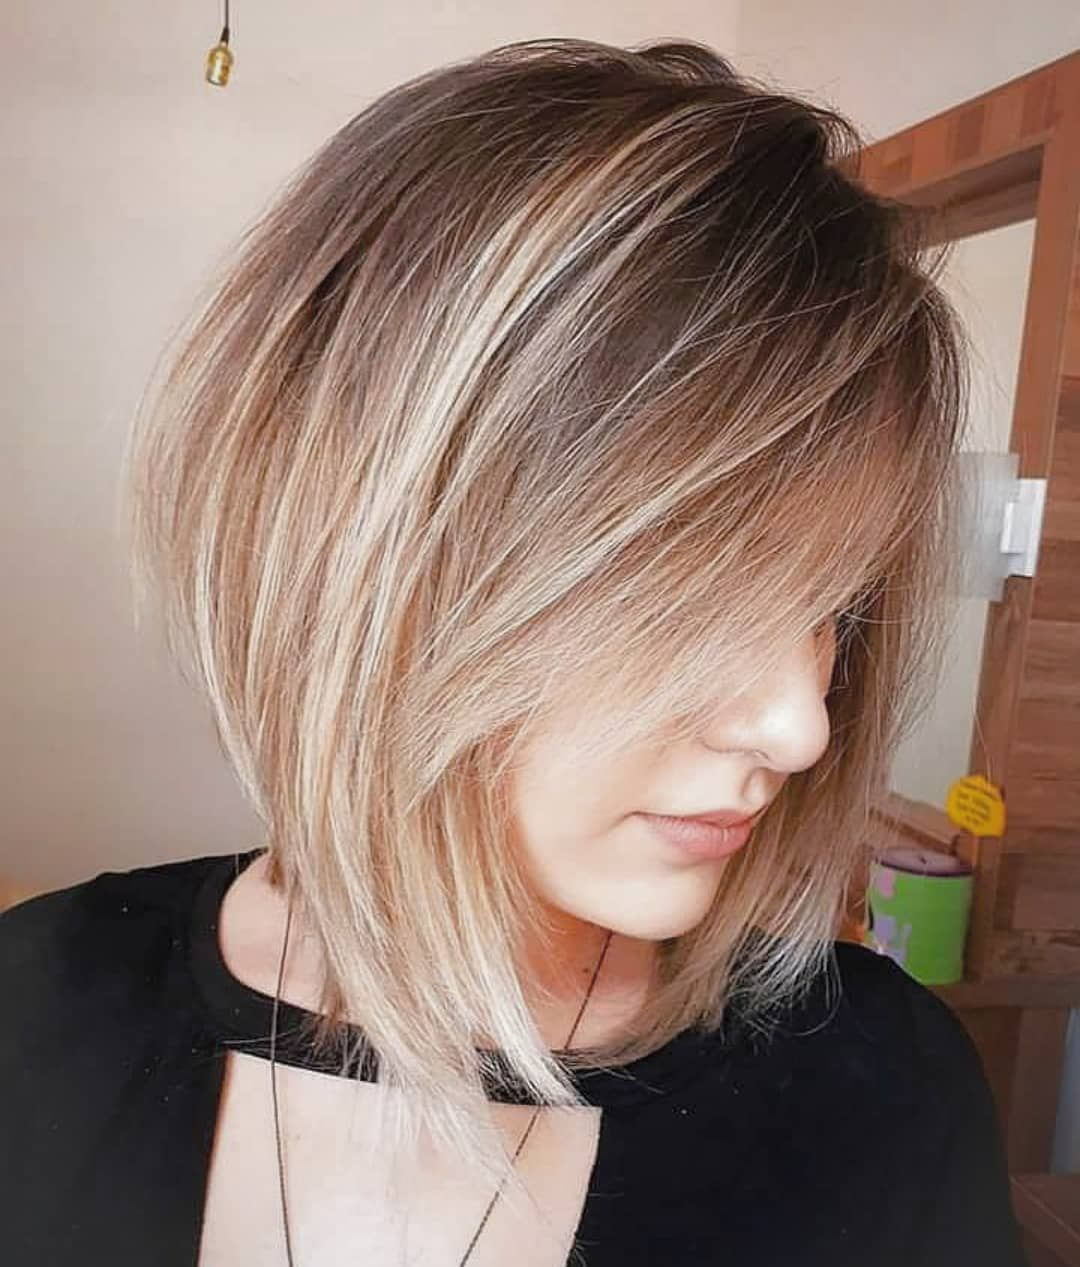 Stylish Choppy Lob Haircut For 2019 Women Shoulder Length Hairstyle Ideas Haircut For Thick Hair Lob Haircut Medium Hair Styles